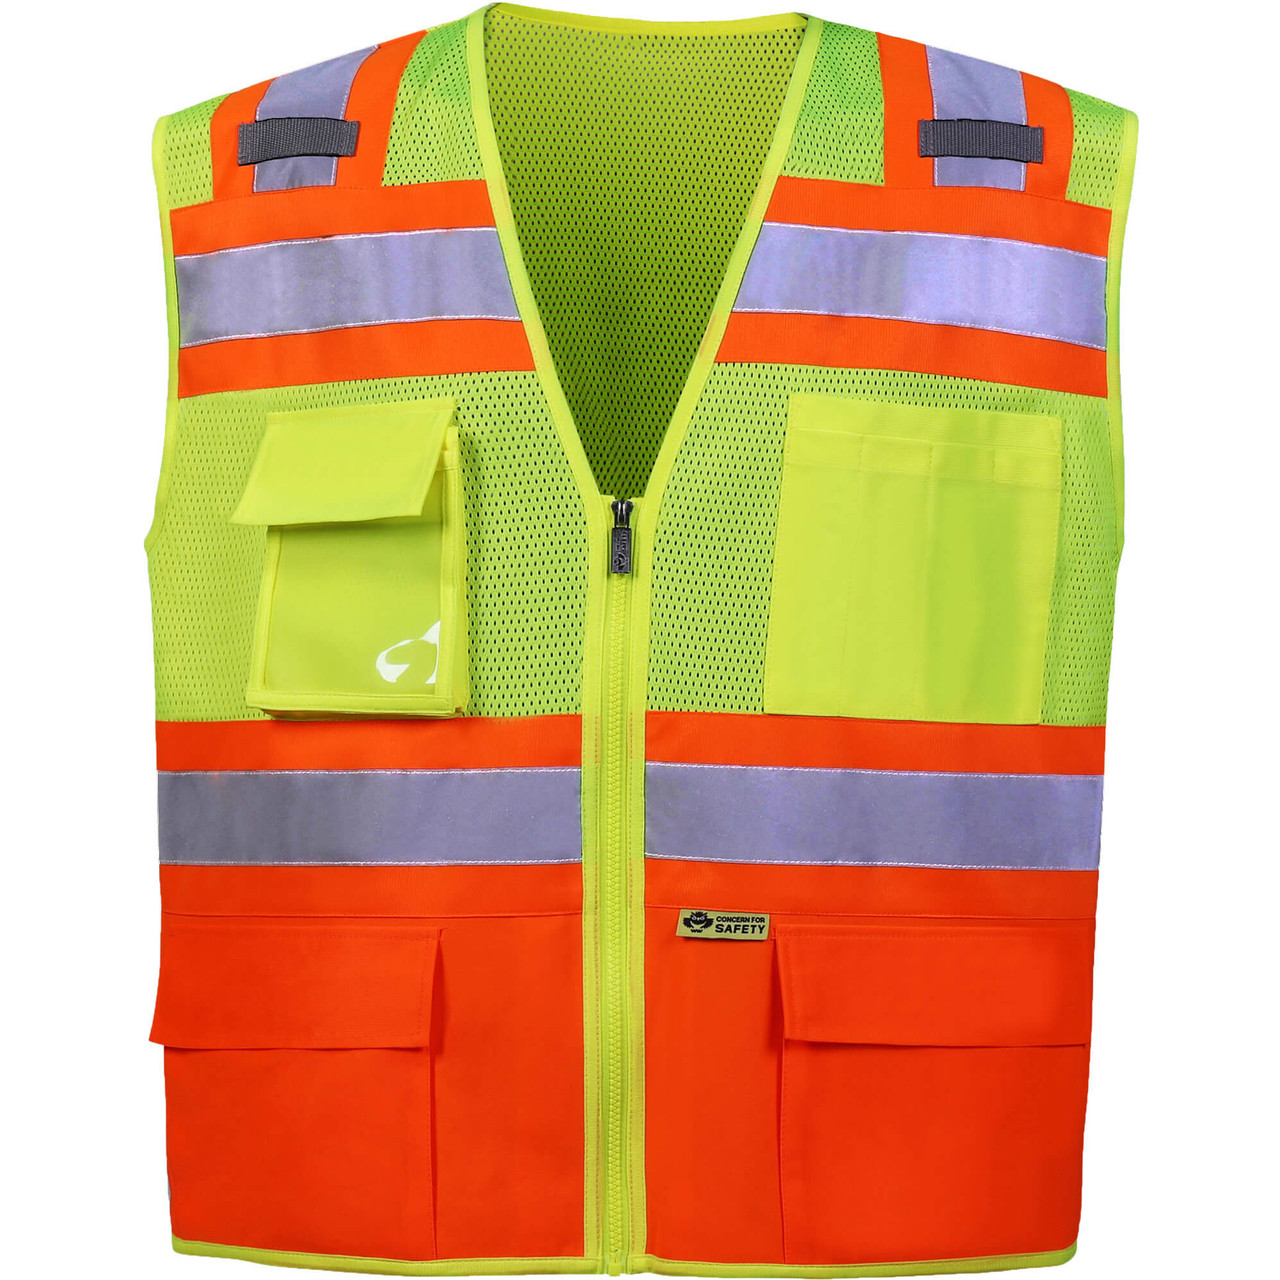 Safety Vest | Orange Bottom Safety Vest with contrast color Class 2 | Class Two Safety Vest | Hi Vis Vest Class 2 | Safety Jacket with contrast Color | Safety Vest with Pockets